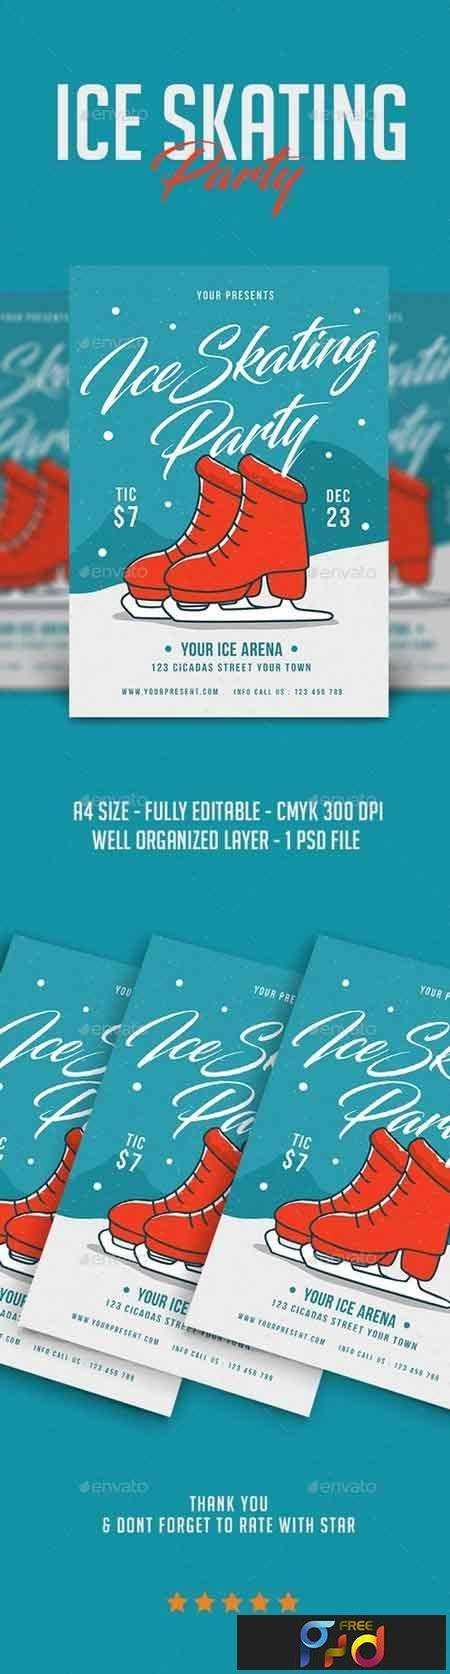 1708207 Ice Skating Party Flyer 21087919 1